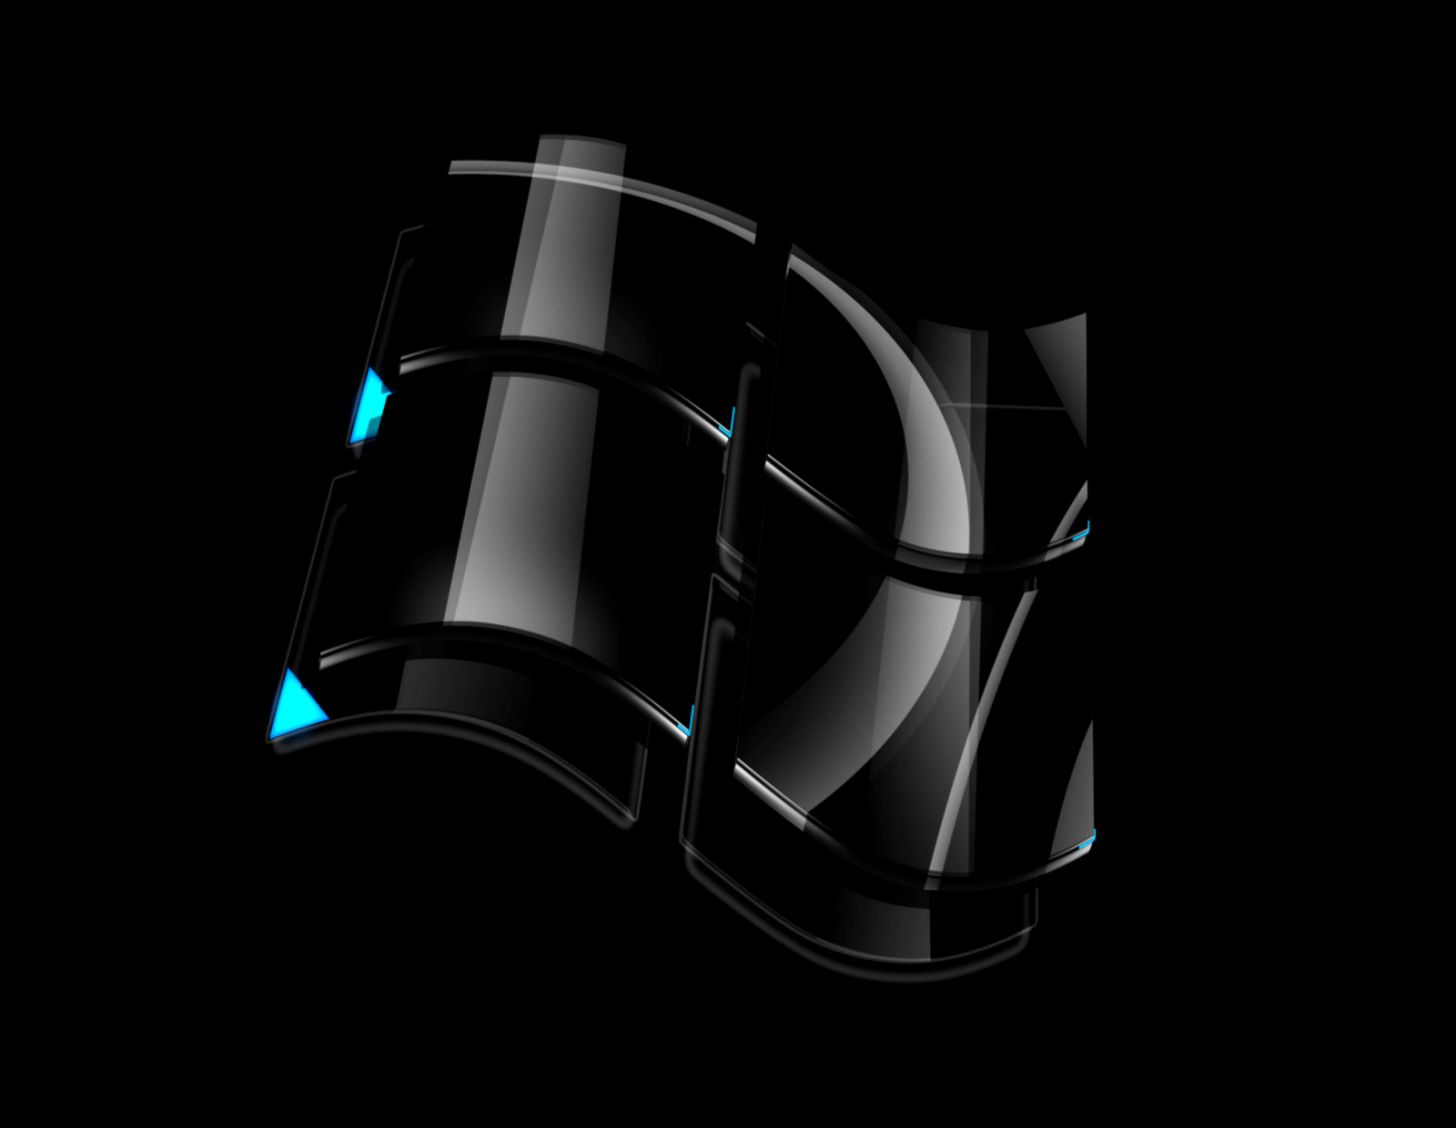 3D Animated Wallpapers Windows 7 | Best HD Wallpapers  3D Animated Wal...